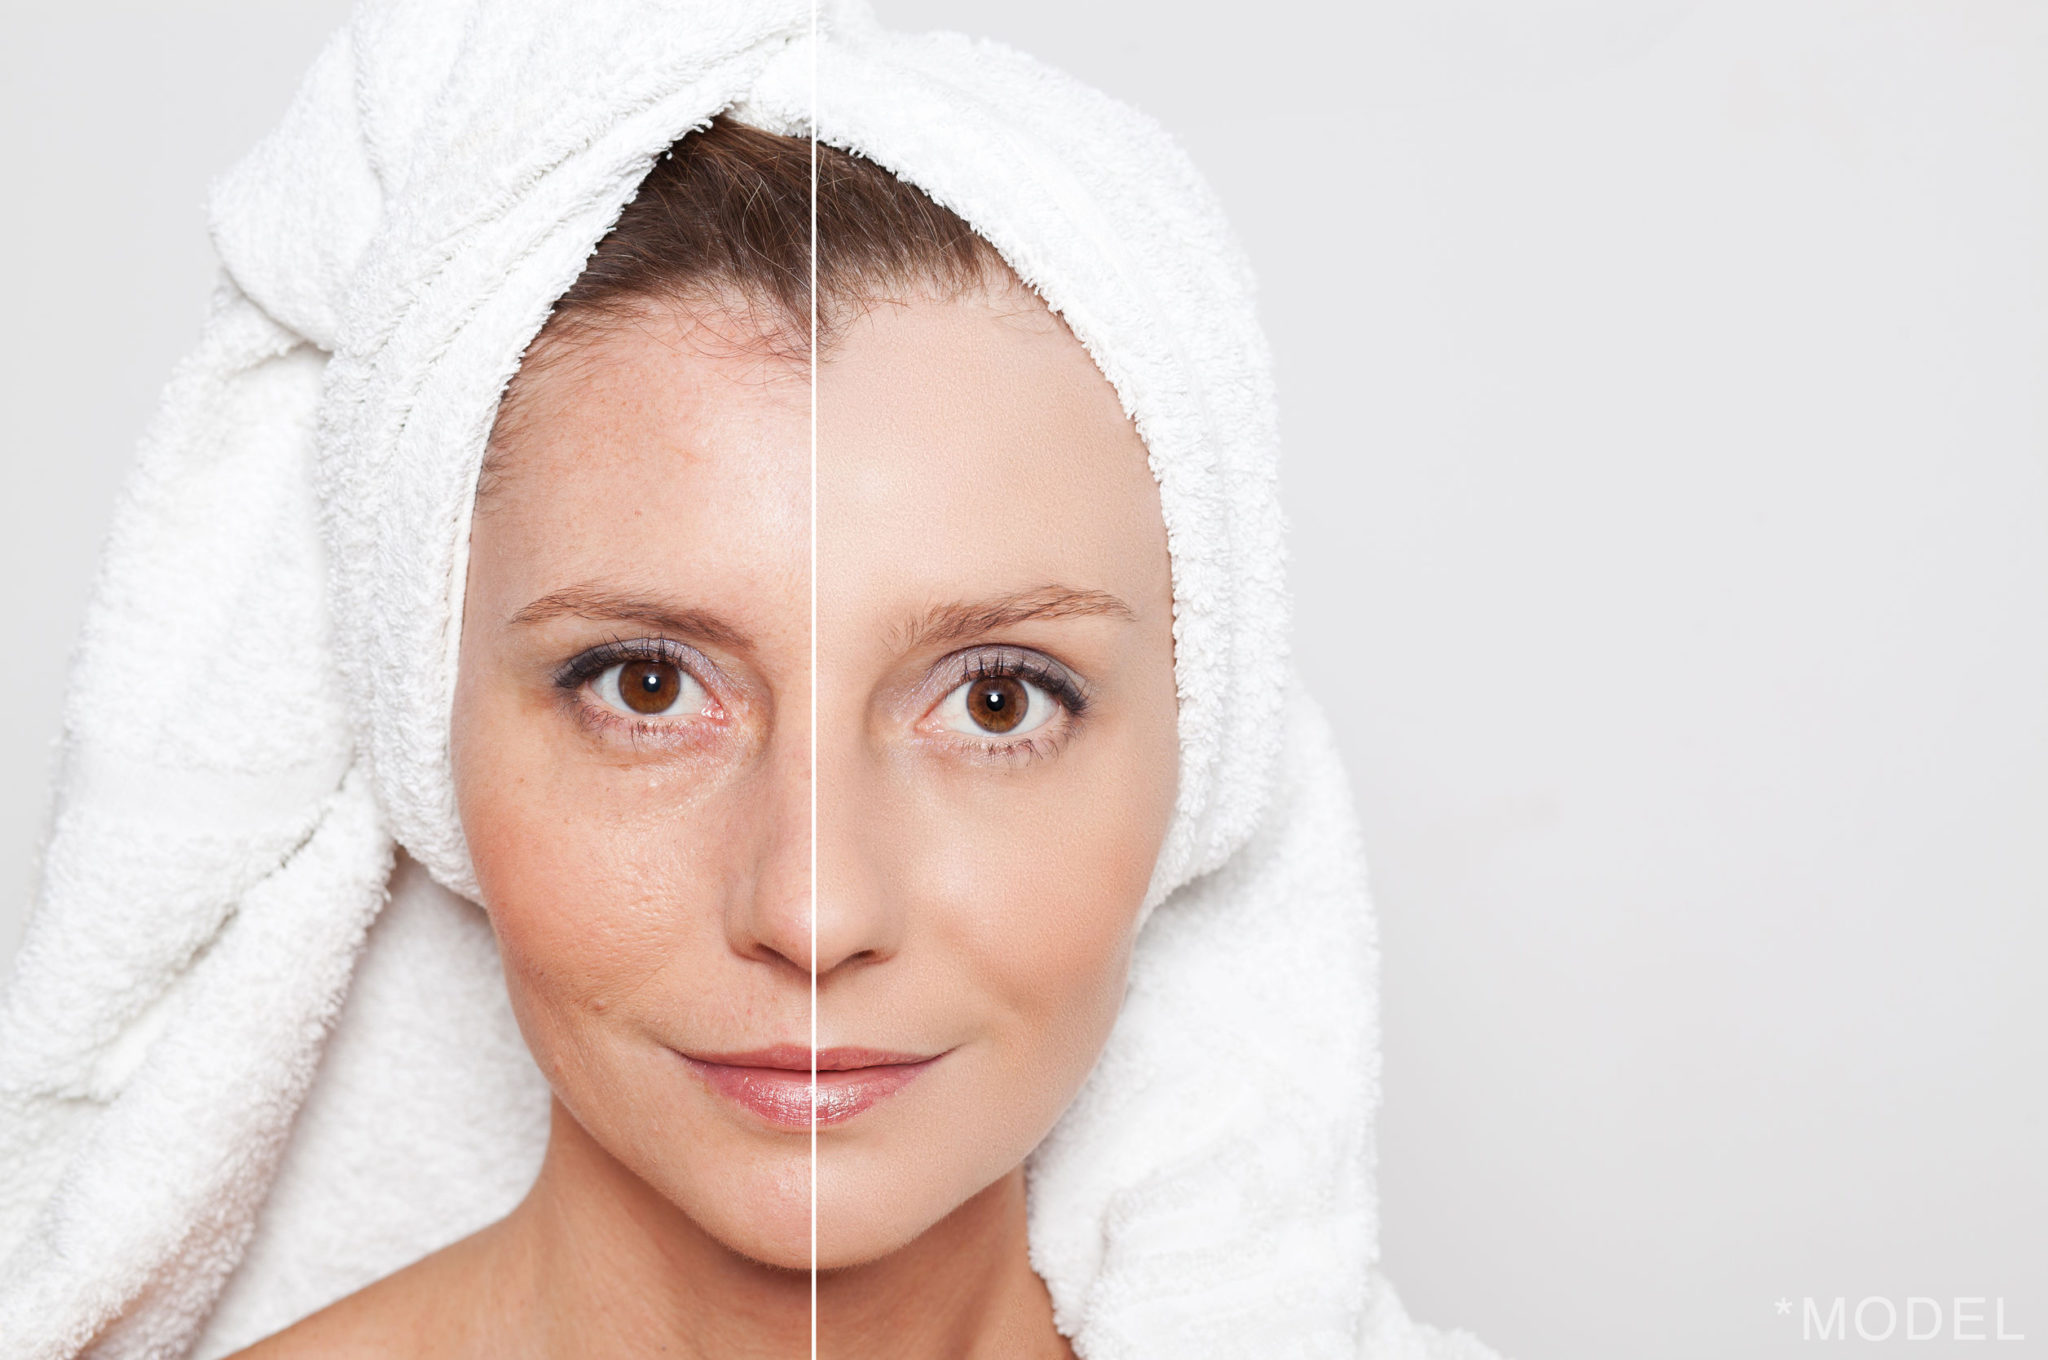 Skin Care Treatments for your 30s